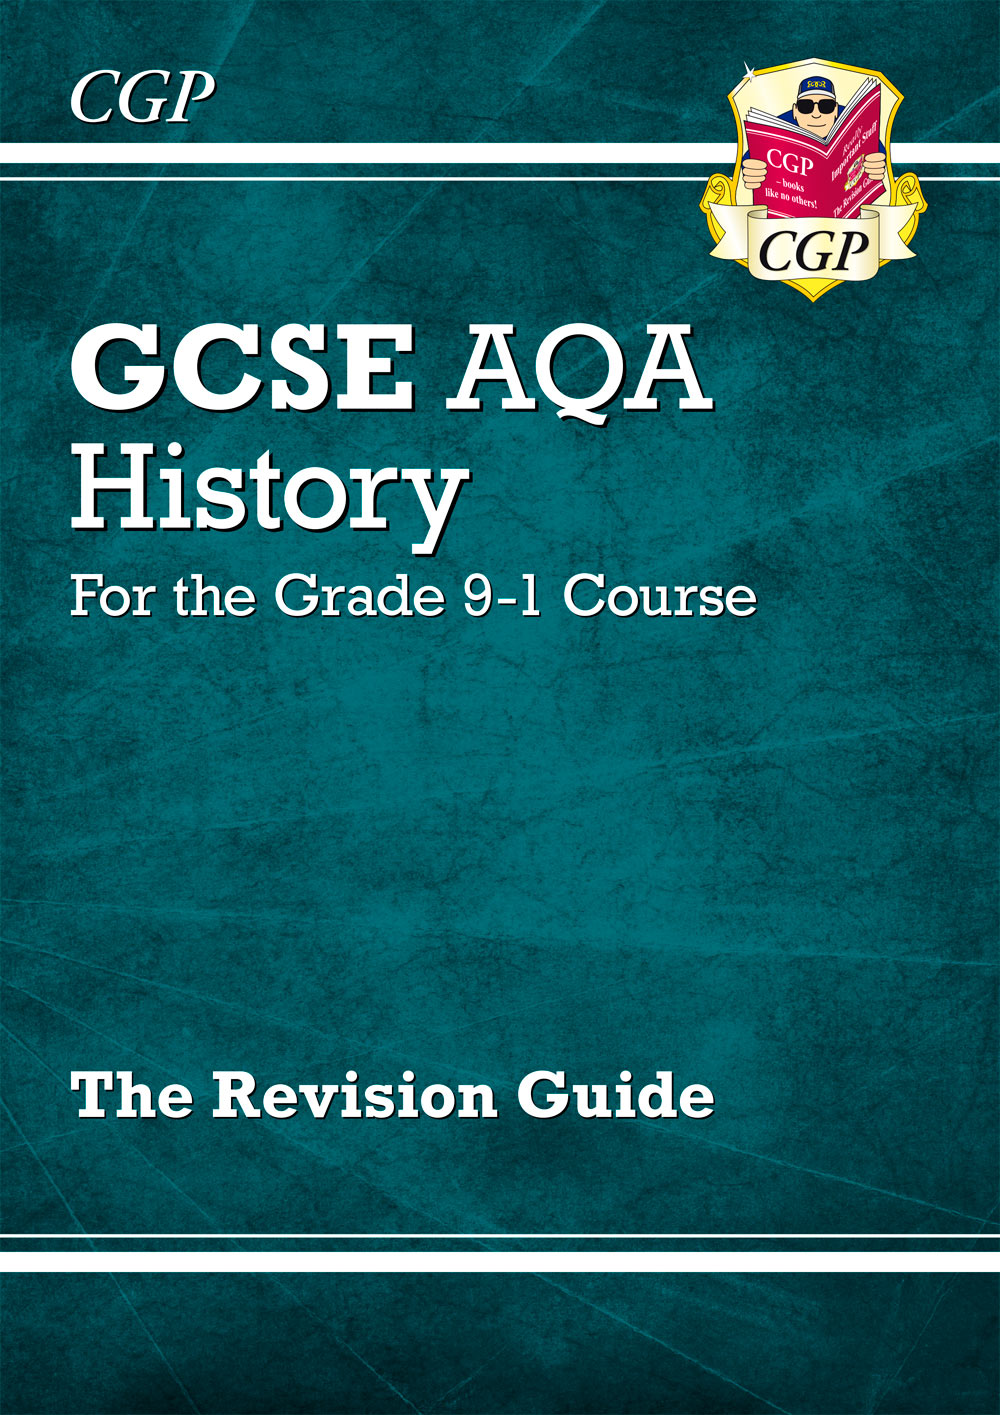 GCSE History AQA Revision Guide - for the Grade 9-1 Course